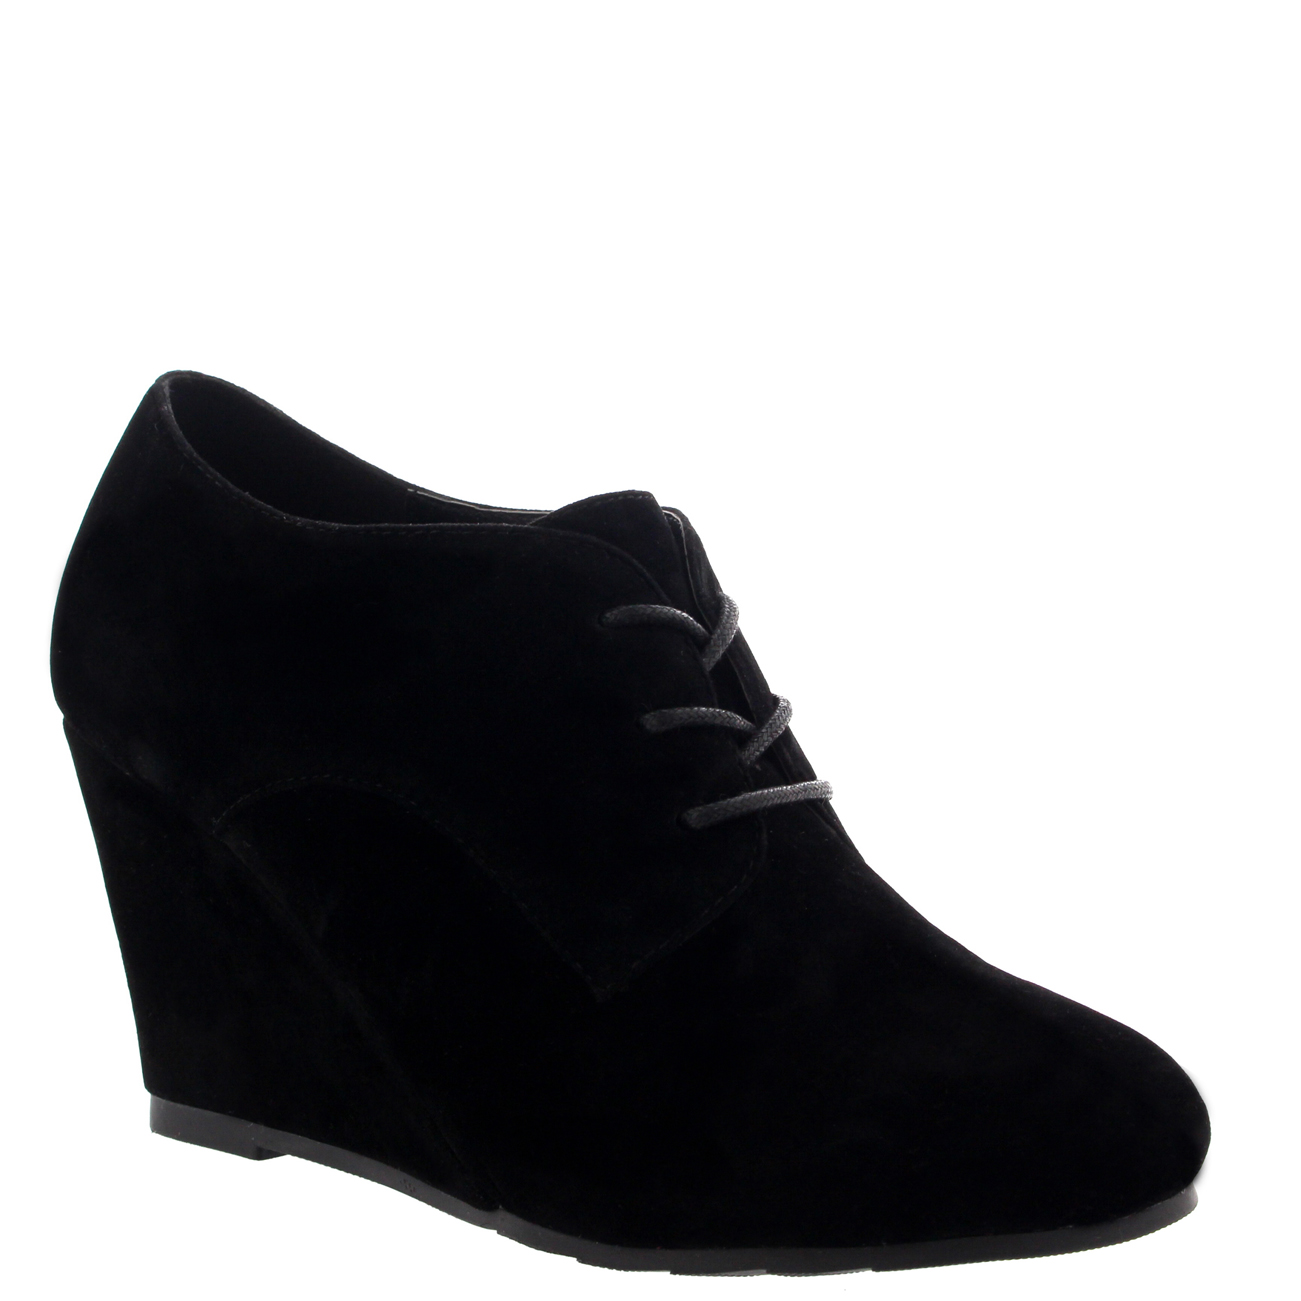 9028167570f Details about Womens Mary Jane Wedge Heel Evening Platform Lace Up Shoes  Ankle Boots US 5-11